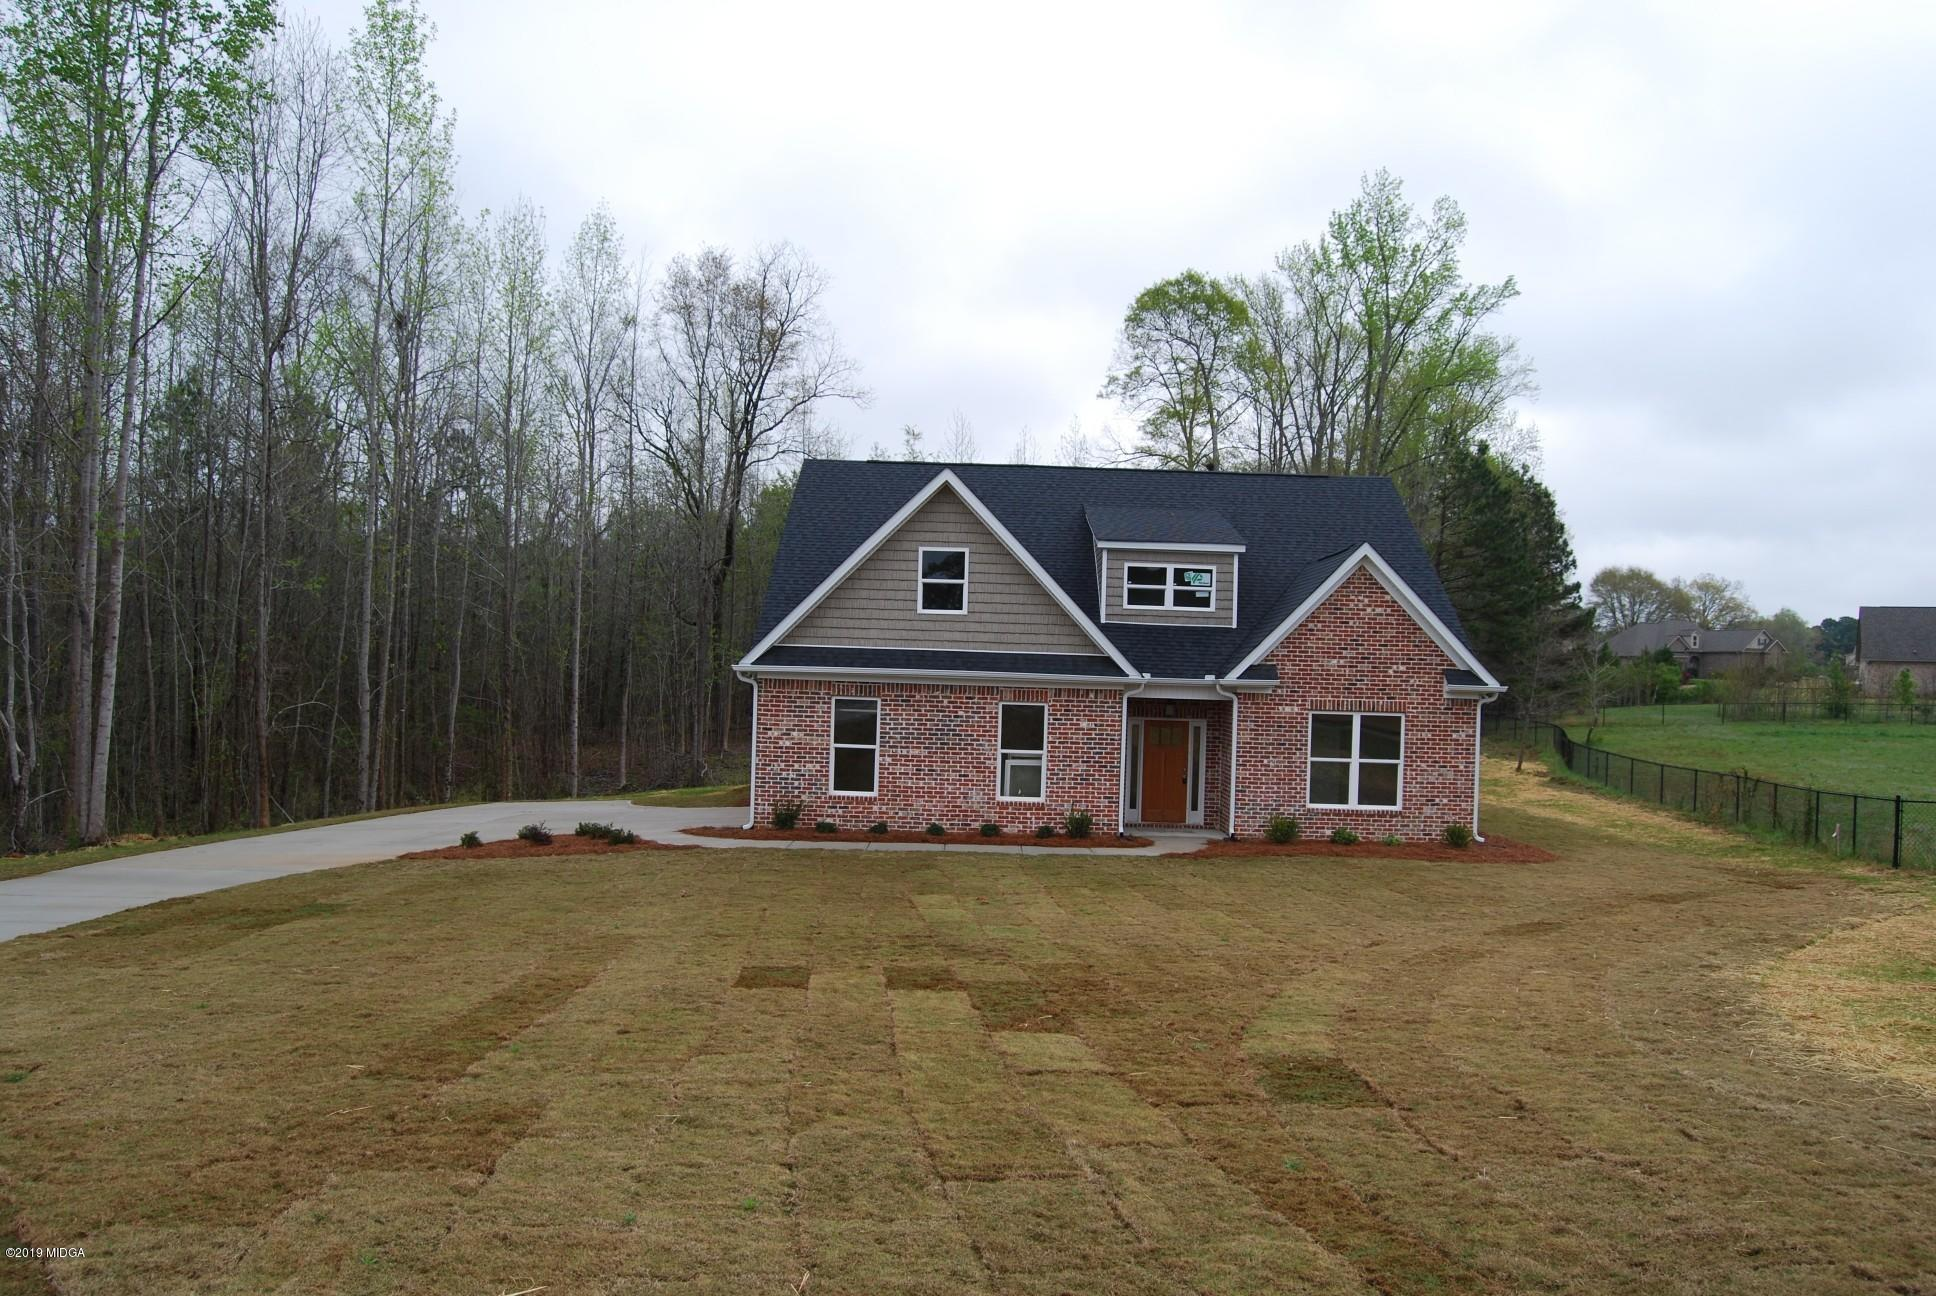 113 Sunspire Lane, Milner, GA 30257